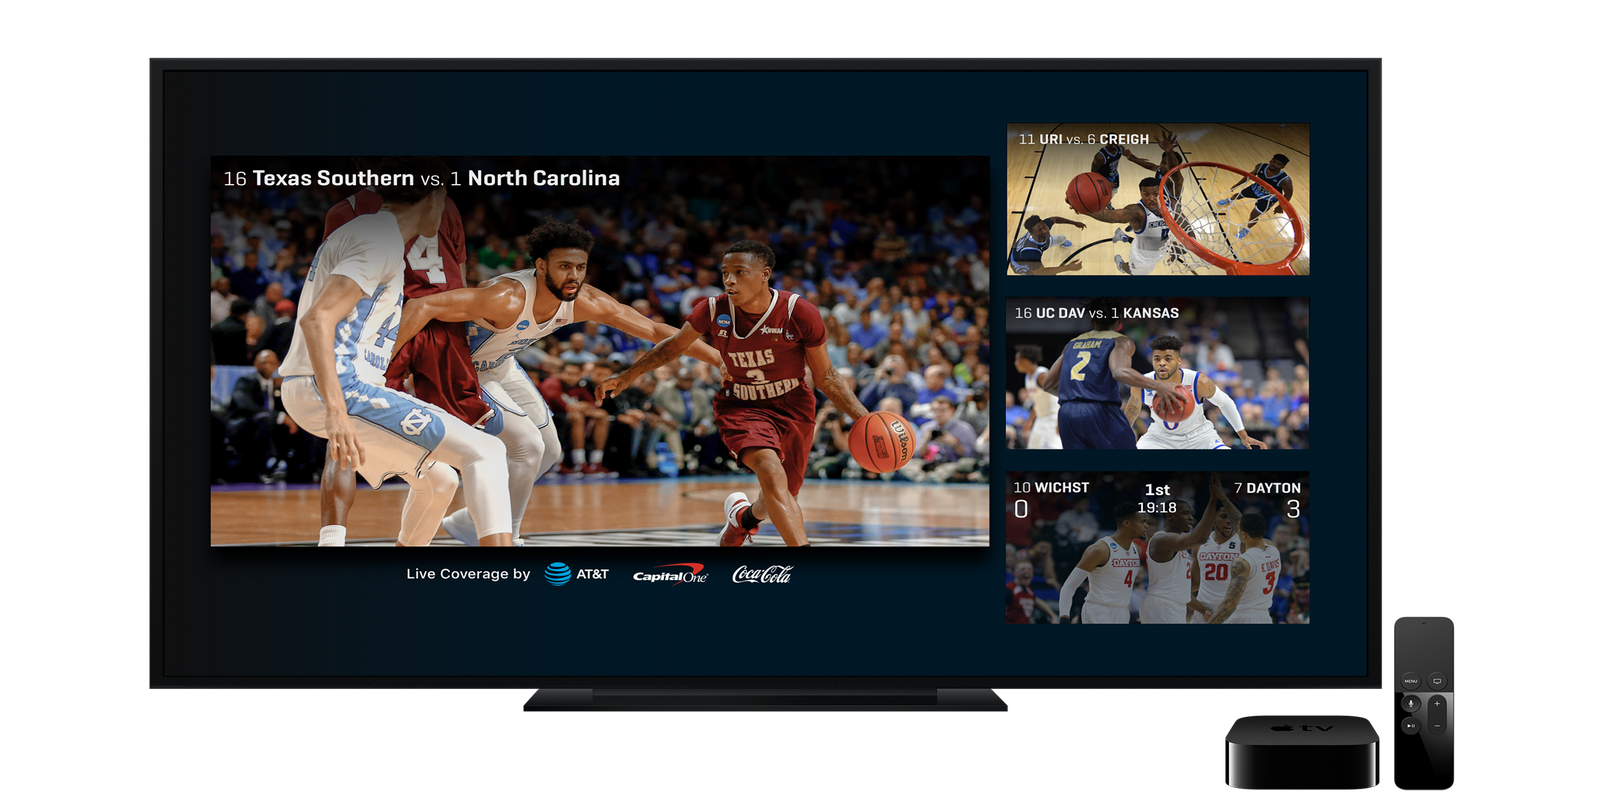 March Madness: A cord cutter's guide to watching, streaming